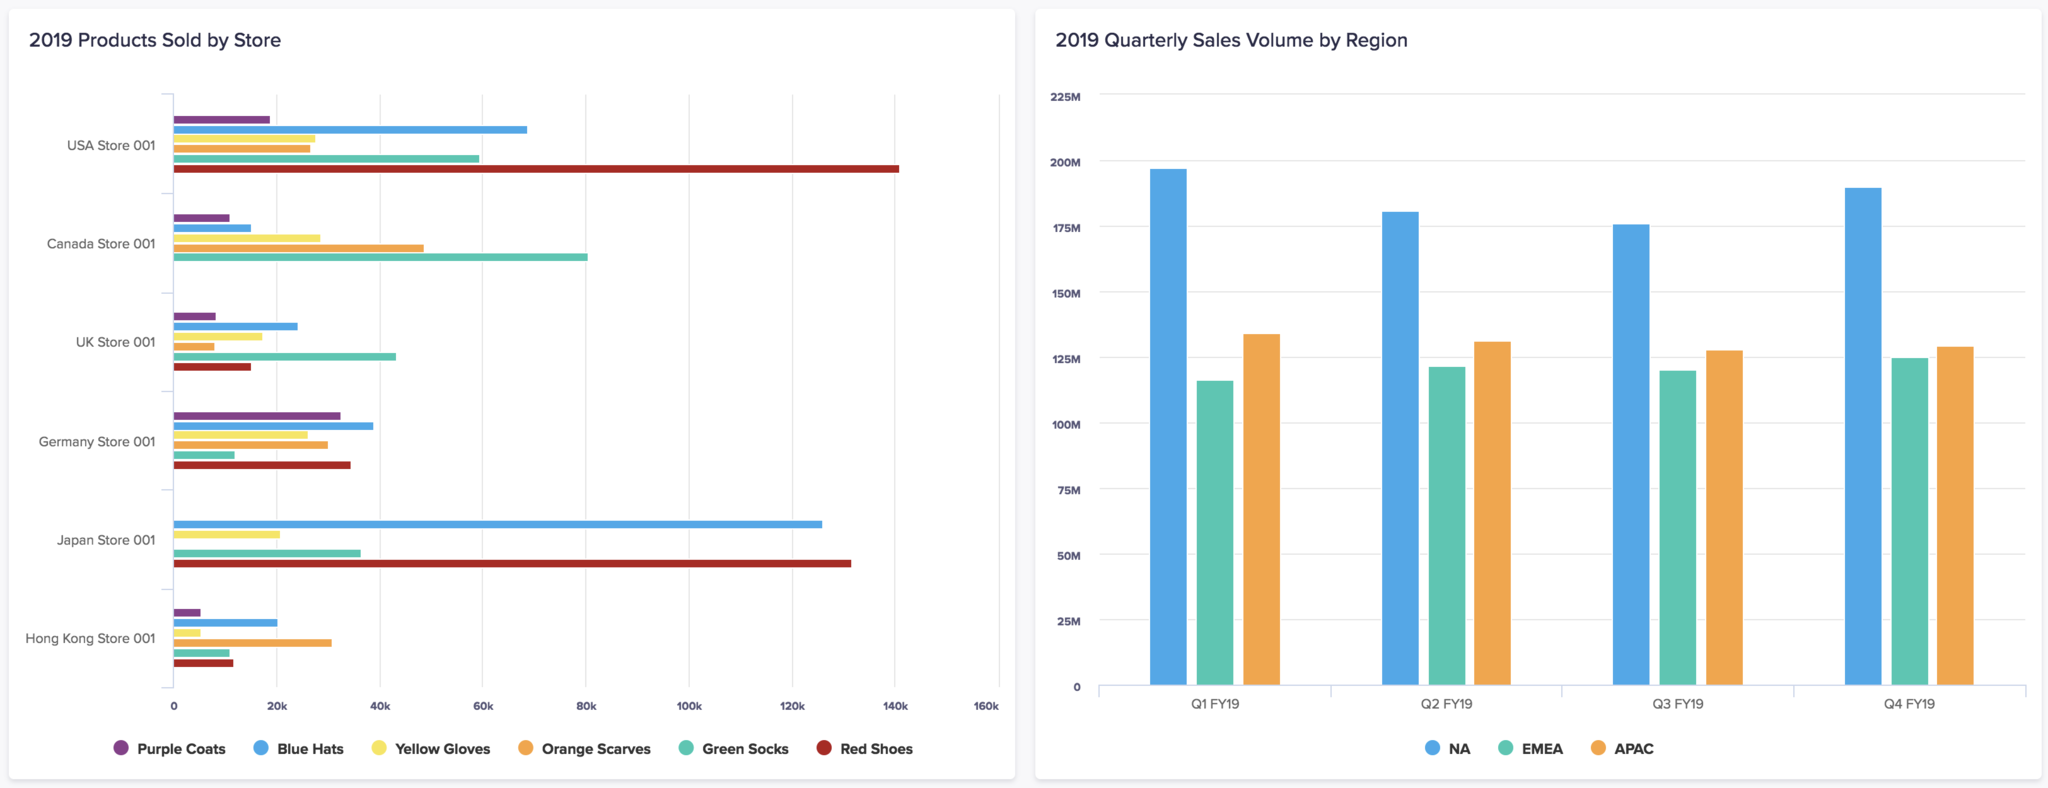 A bar chart on the left, and a column chart on the right. The bar chart shows products sold by store, the column chart shows quarterly sales volume by region.